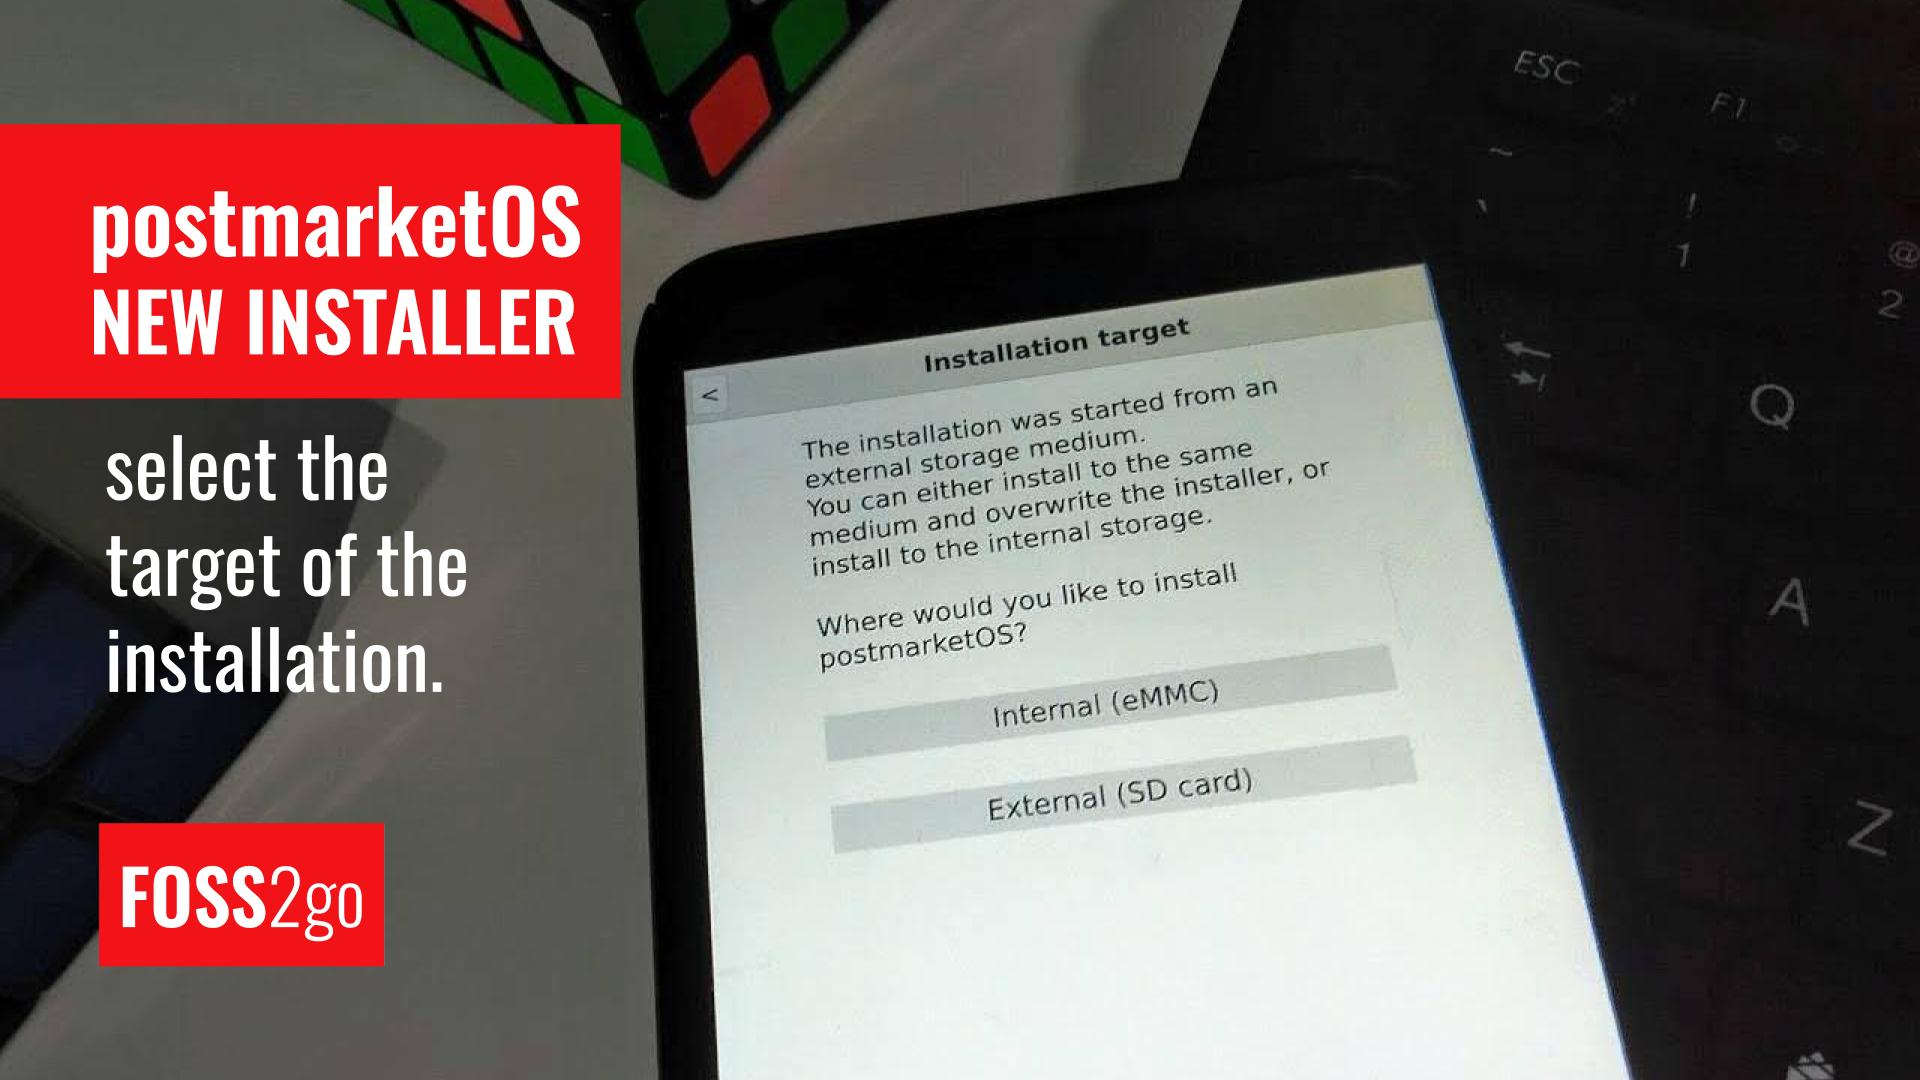 New postmarketOS installer - select the target of the installation